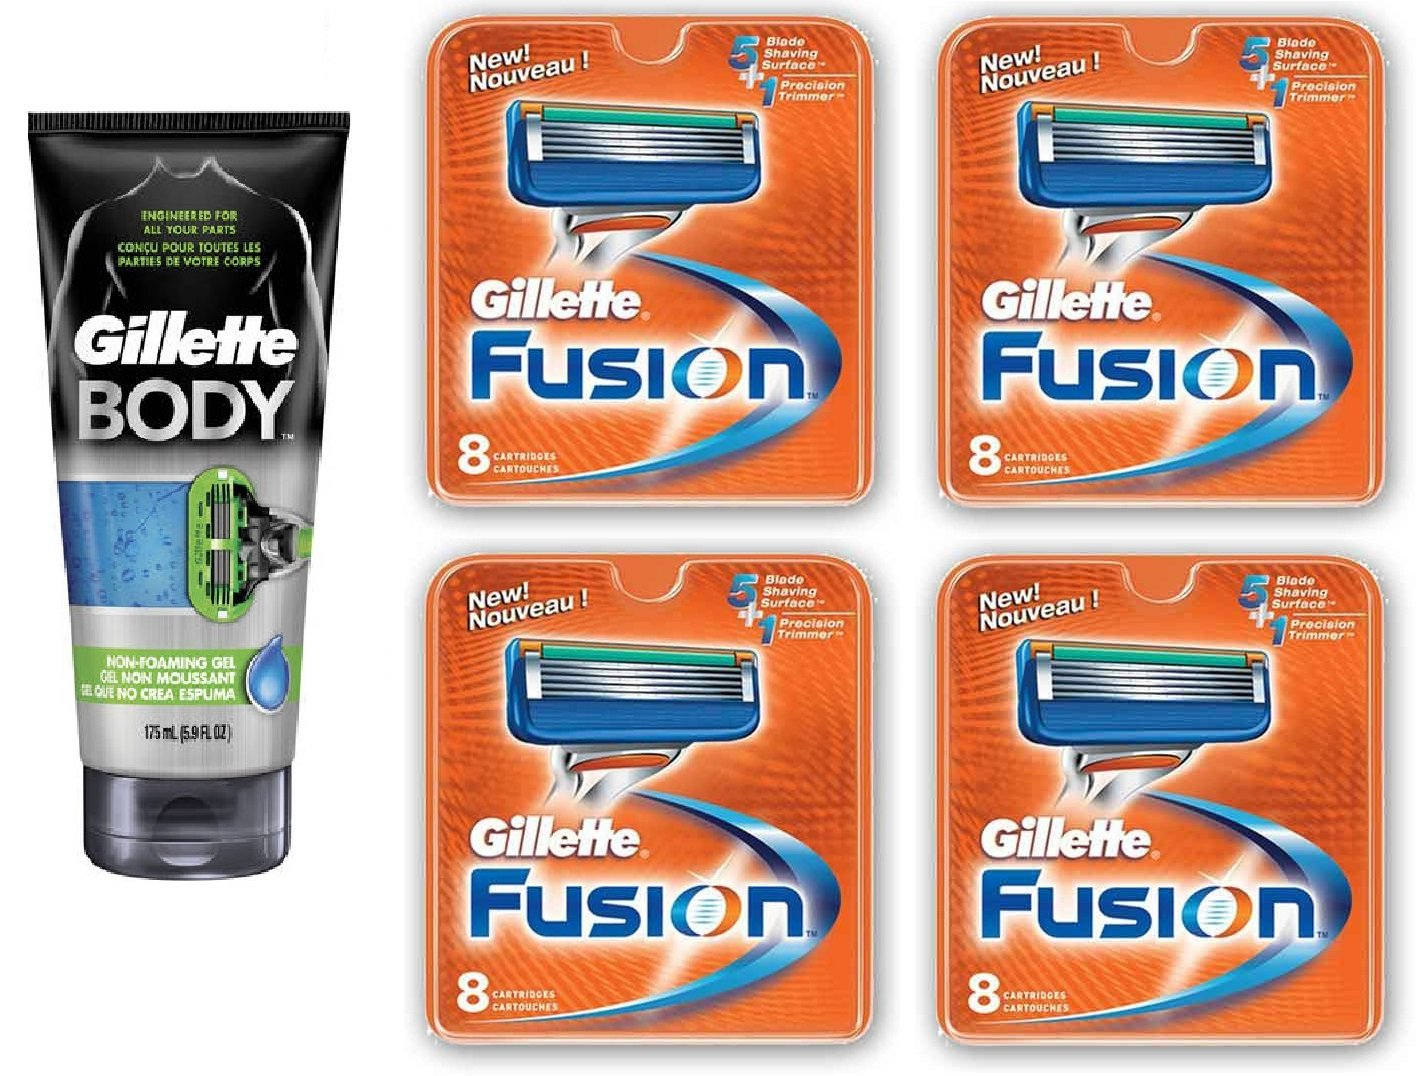 Gillette Body Non Foaming Shave Gel for Men, 5.9 Fl Oz + Fusion Refill Blades 8 Ct (4 Pack) + FREE Assorted Purse Kit/Cosmetic Bag Bonus Gift